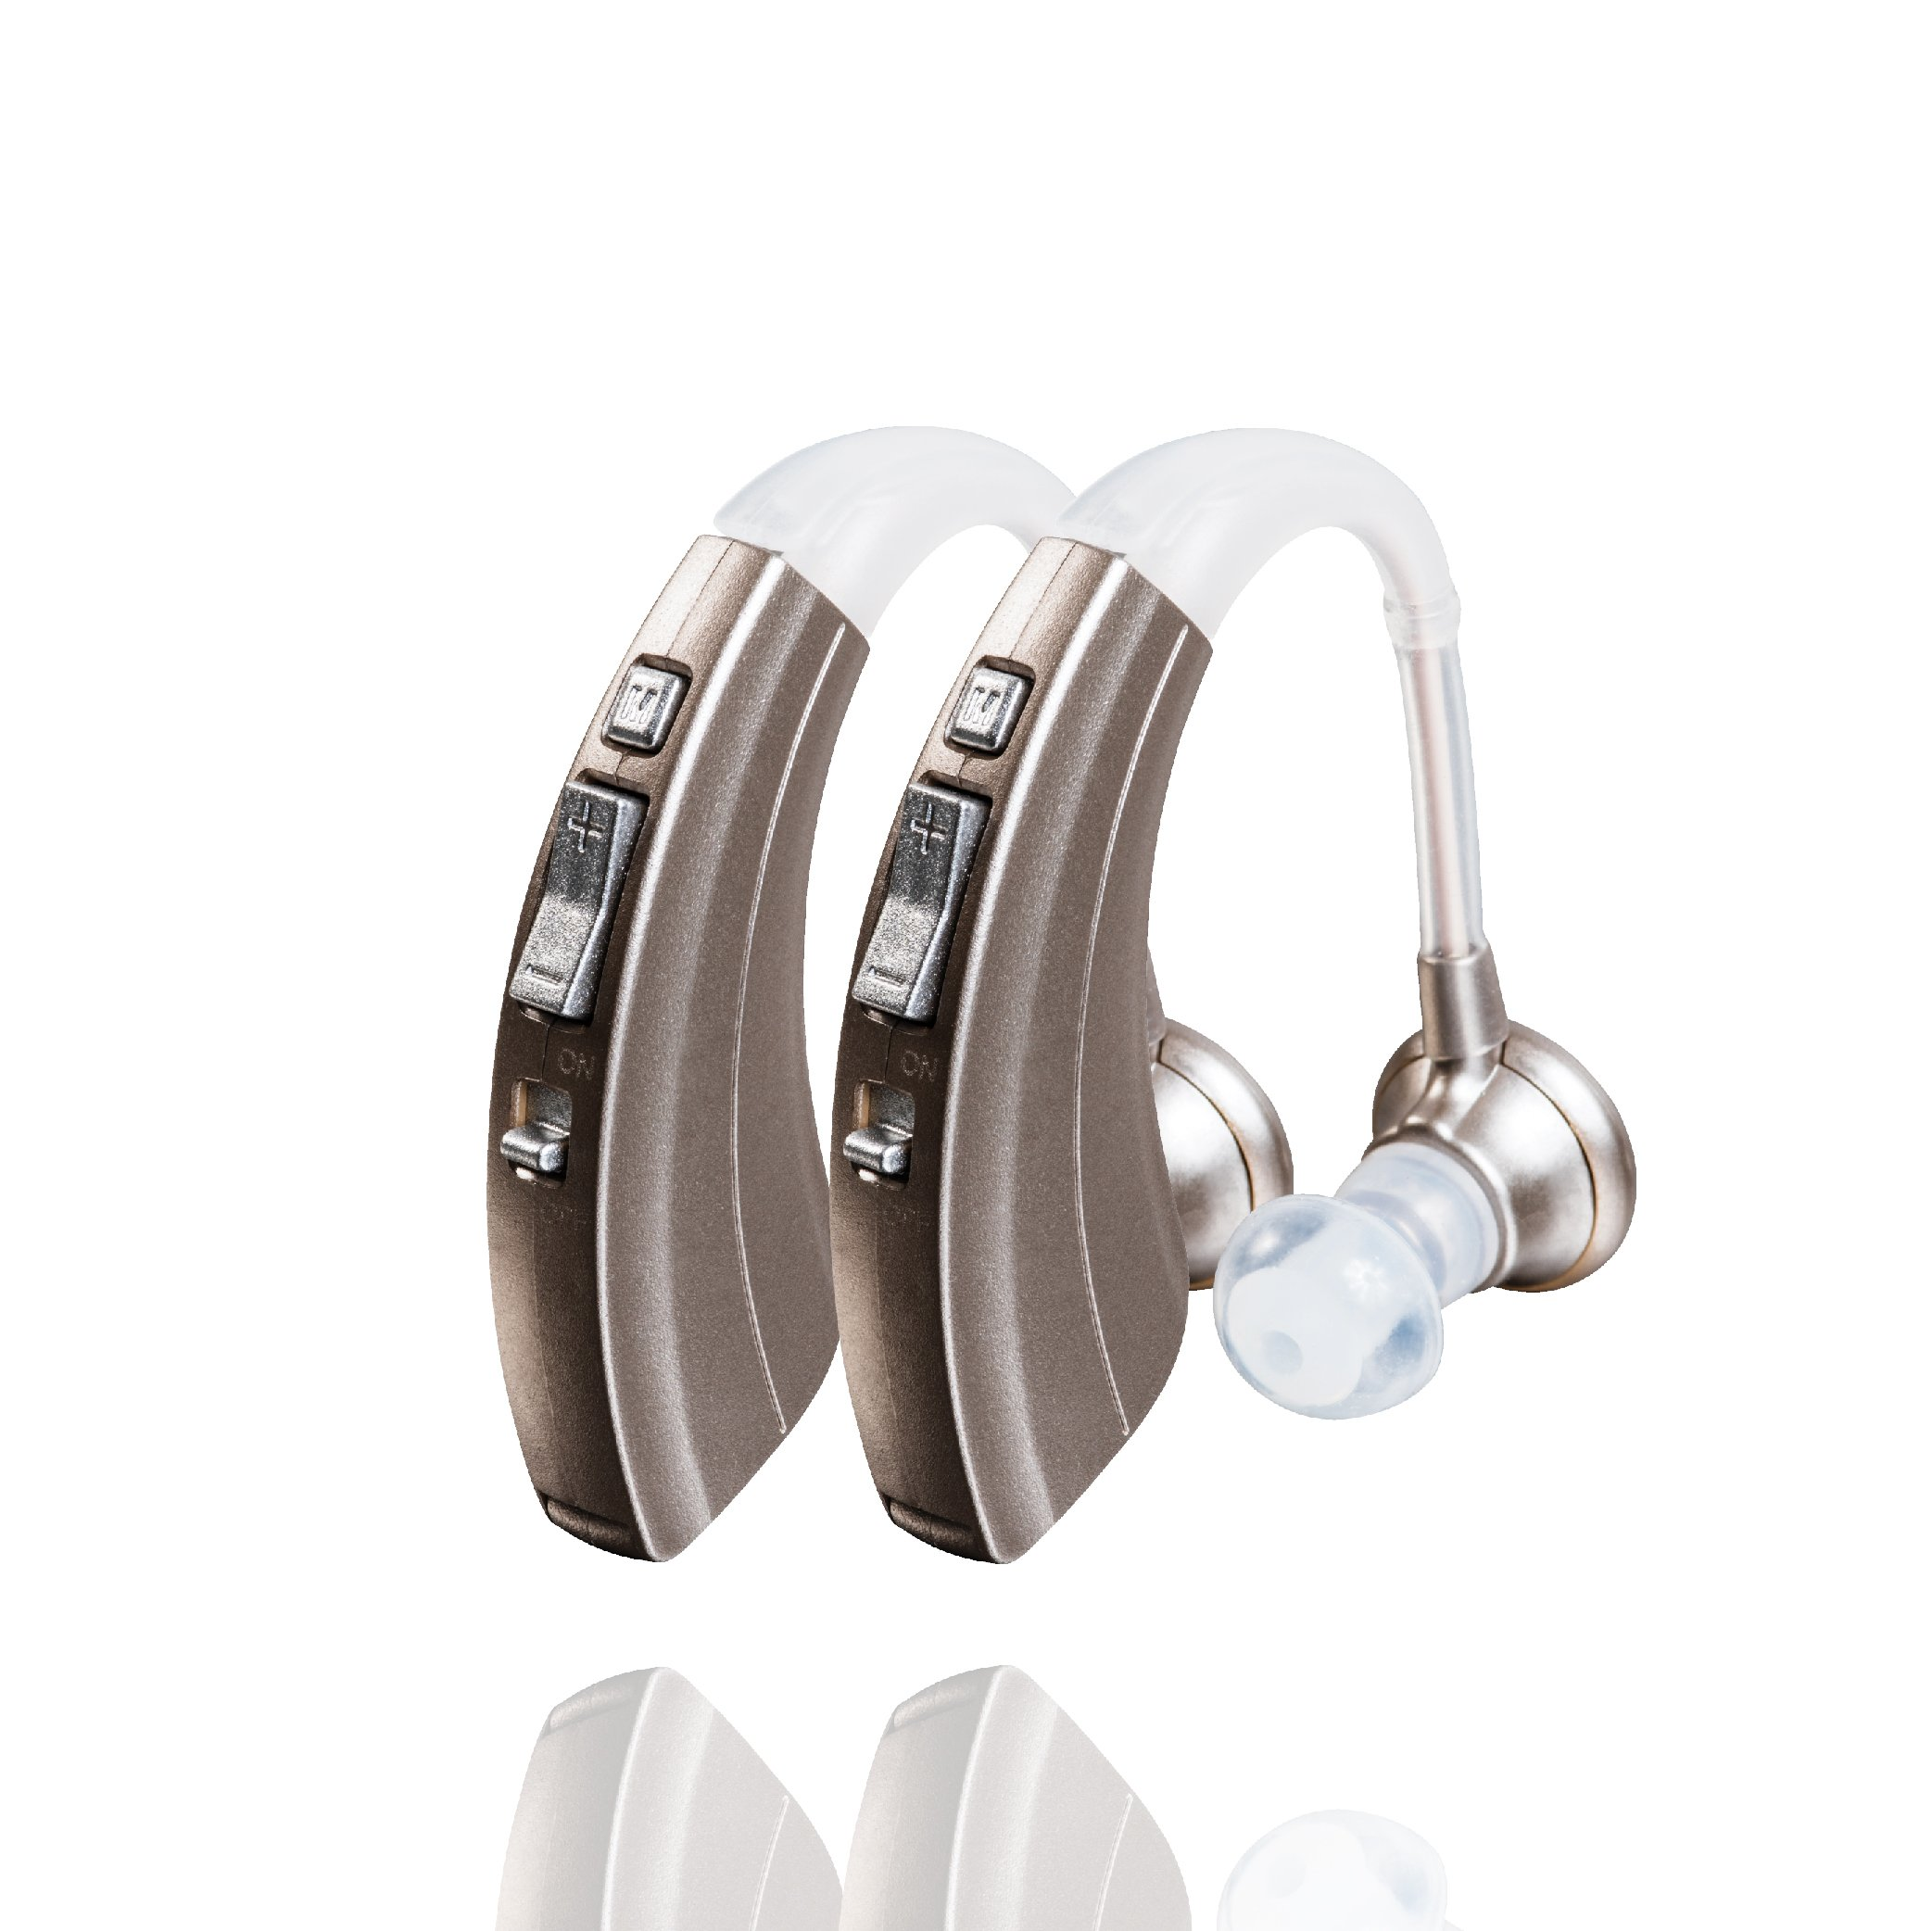 Britzgo BHA-220D Silver Hearing Amplifier, Modern and Fashion Designed Adjustable Tube to Fit Both Ears, Silver/Gray by Britzgo